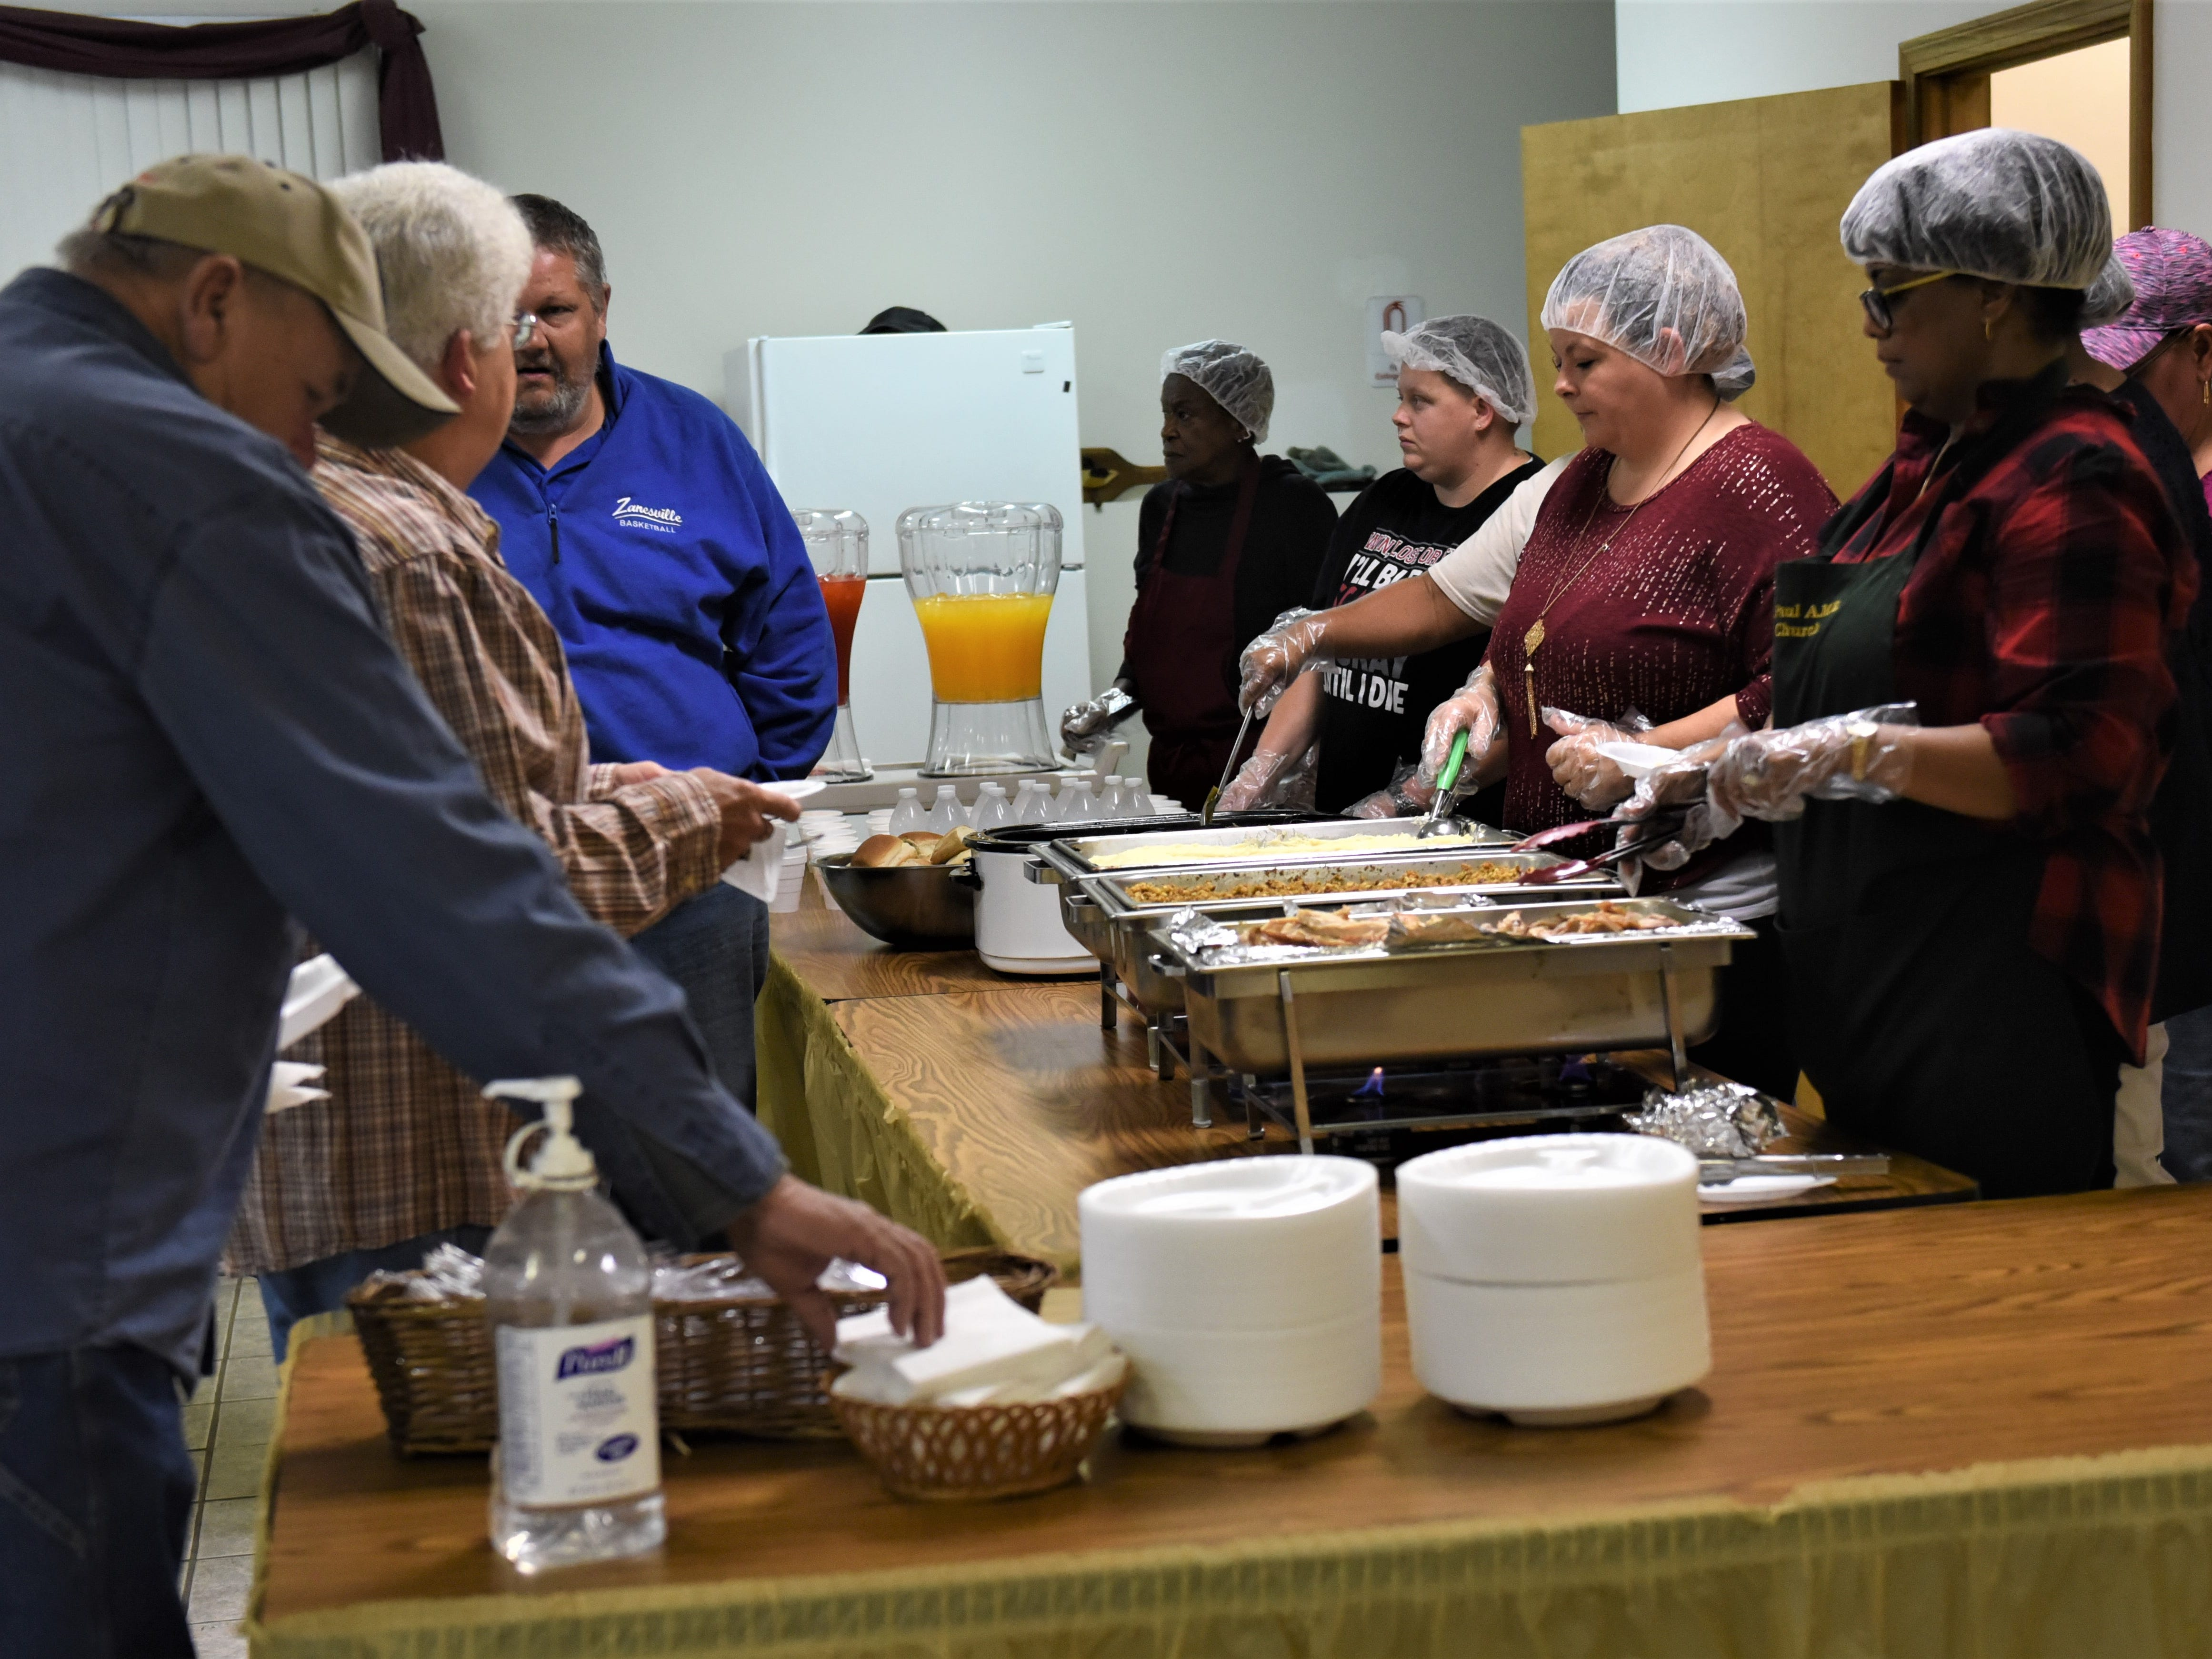 Servers prepare to dish out food during Saturday's Thanksgiving meal at St. Paul AME Church on Pine Street in Zanesville.